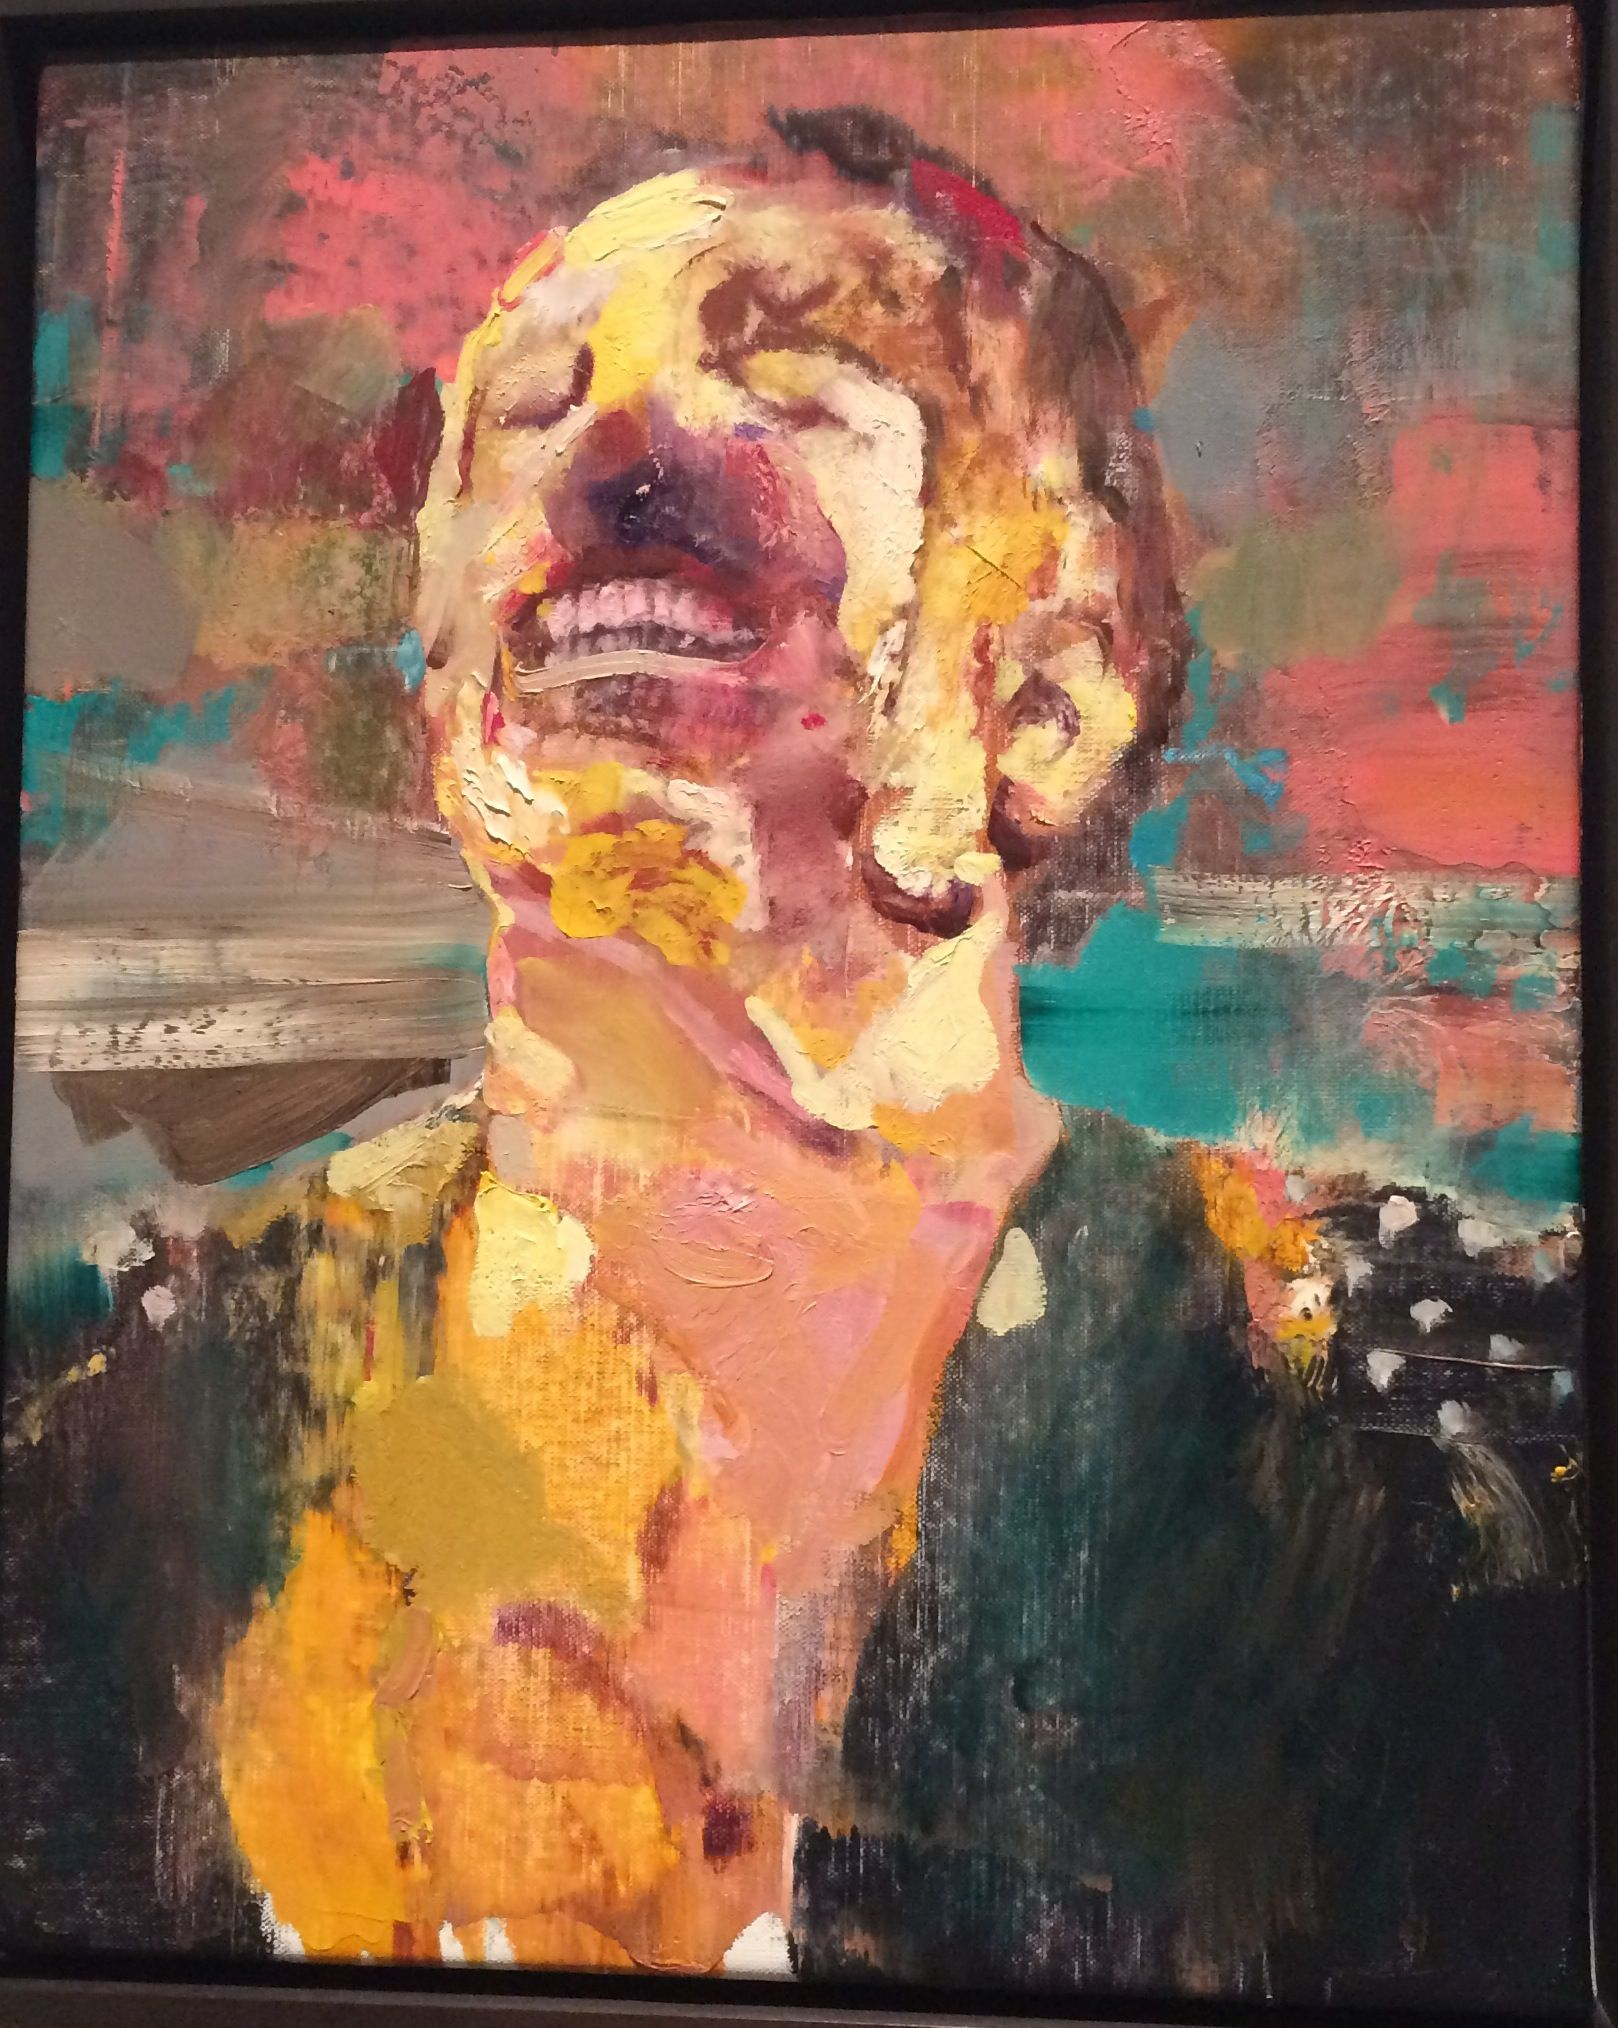 adrian ghenie - Google Search | Arte contemporaneo, Arte, Pinturas